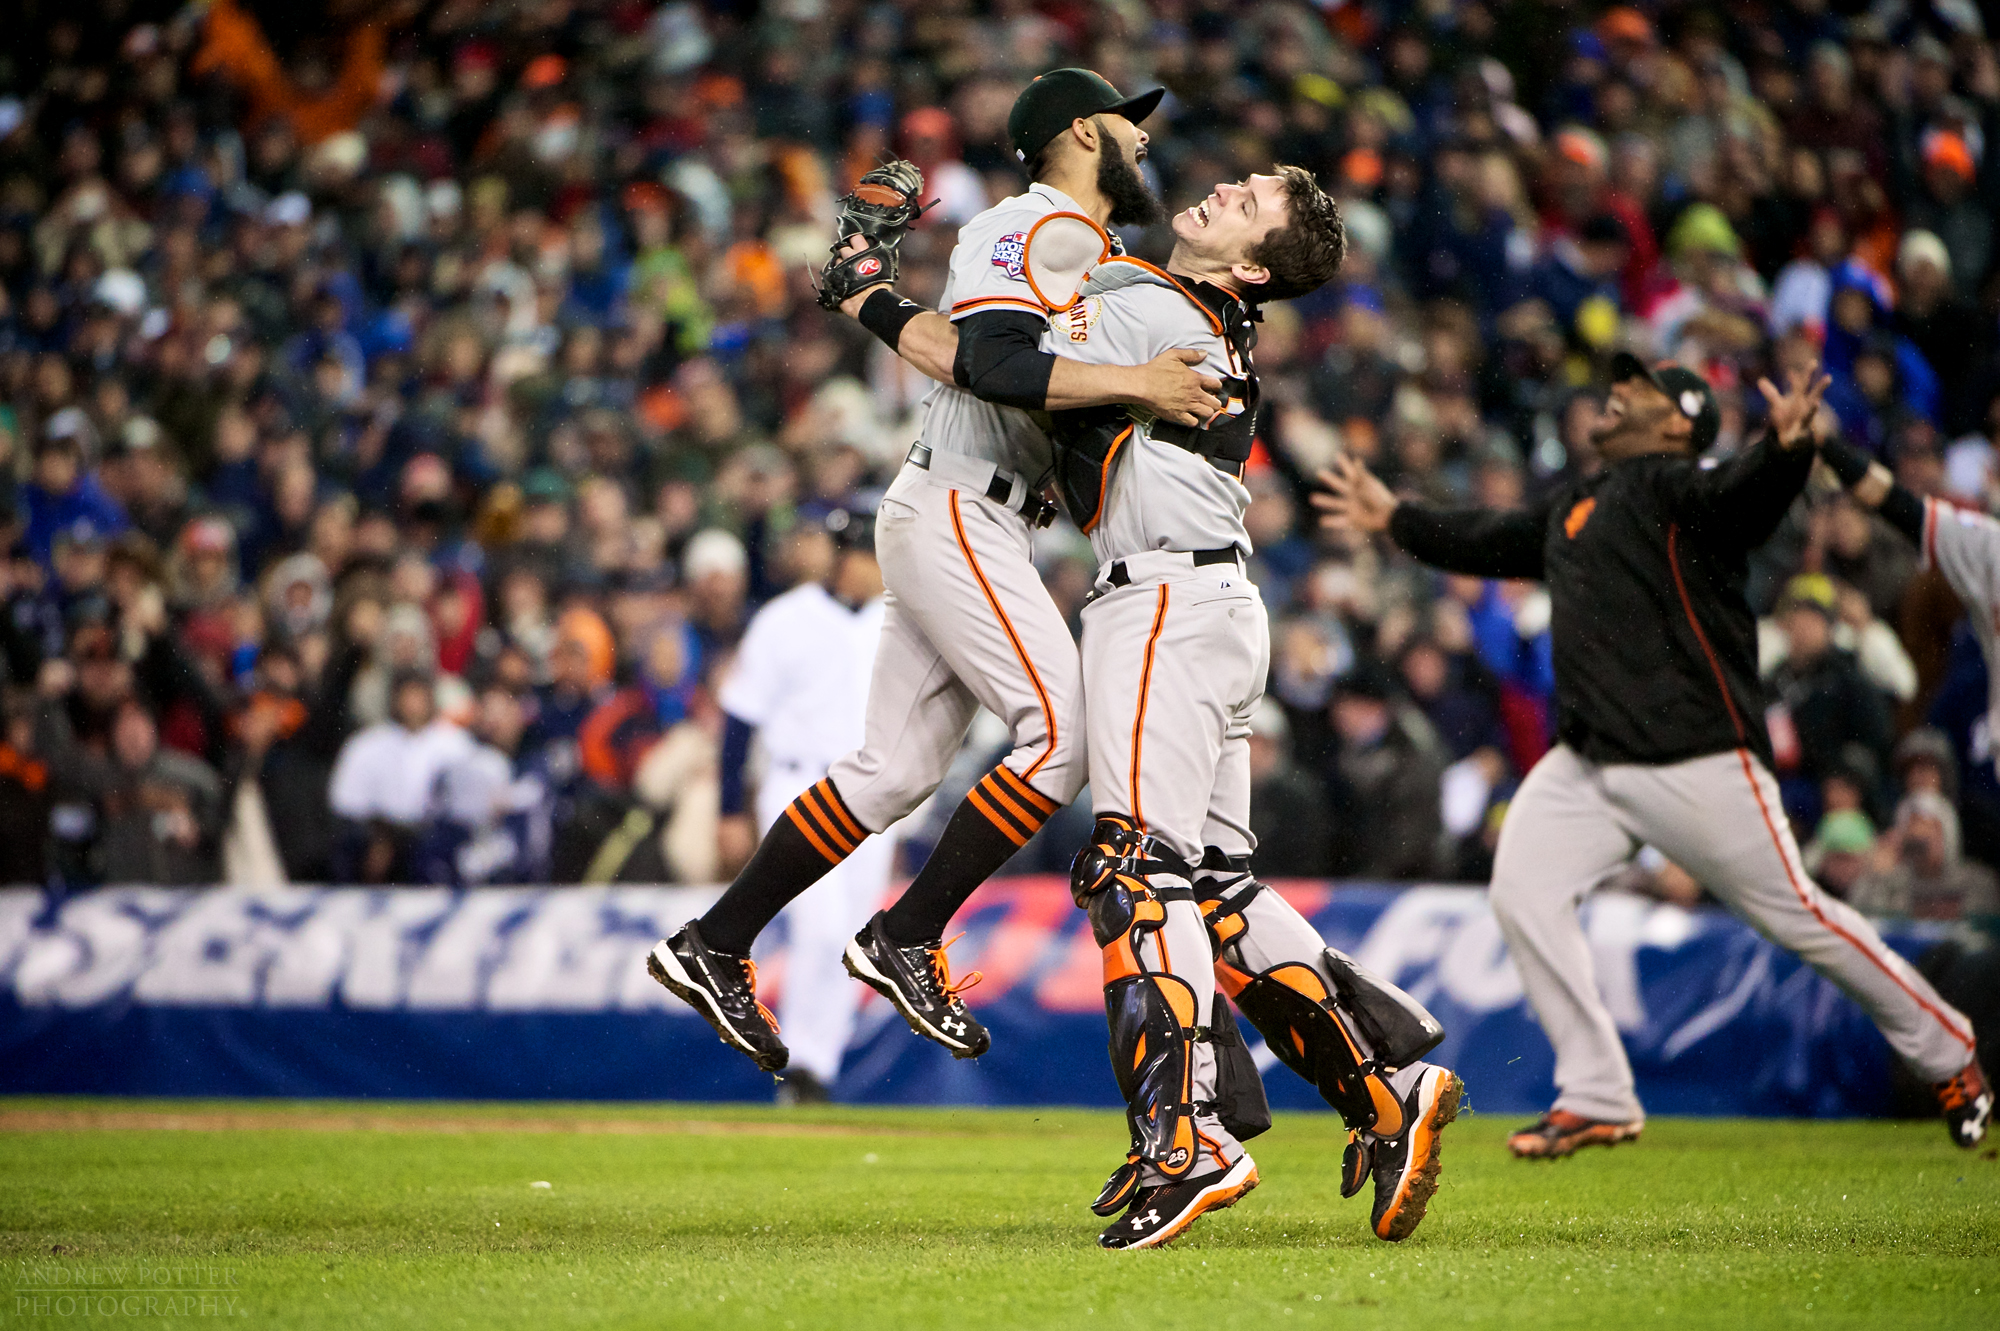 San Francisco Giants; Catcher; Buster Posey; Closing ;Pitcher; Brian Wilson; detroit; tigers; world series; 2012; photography; sports; action; winning; magazine; michigan